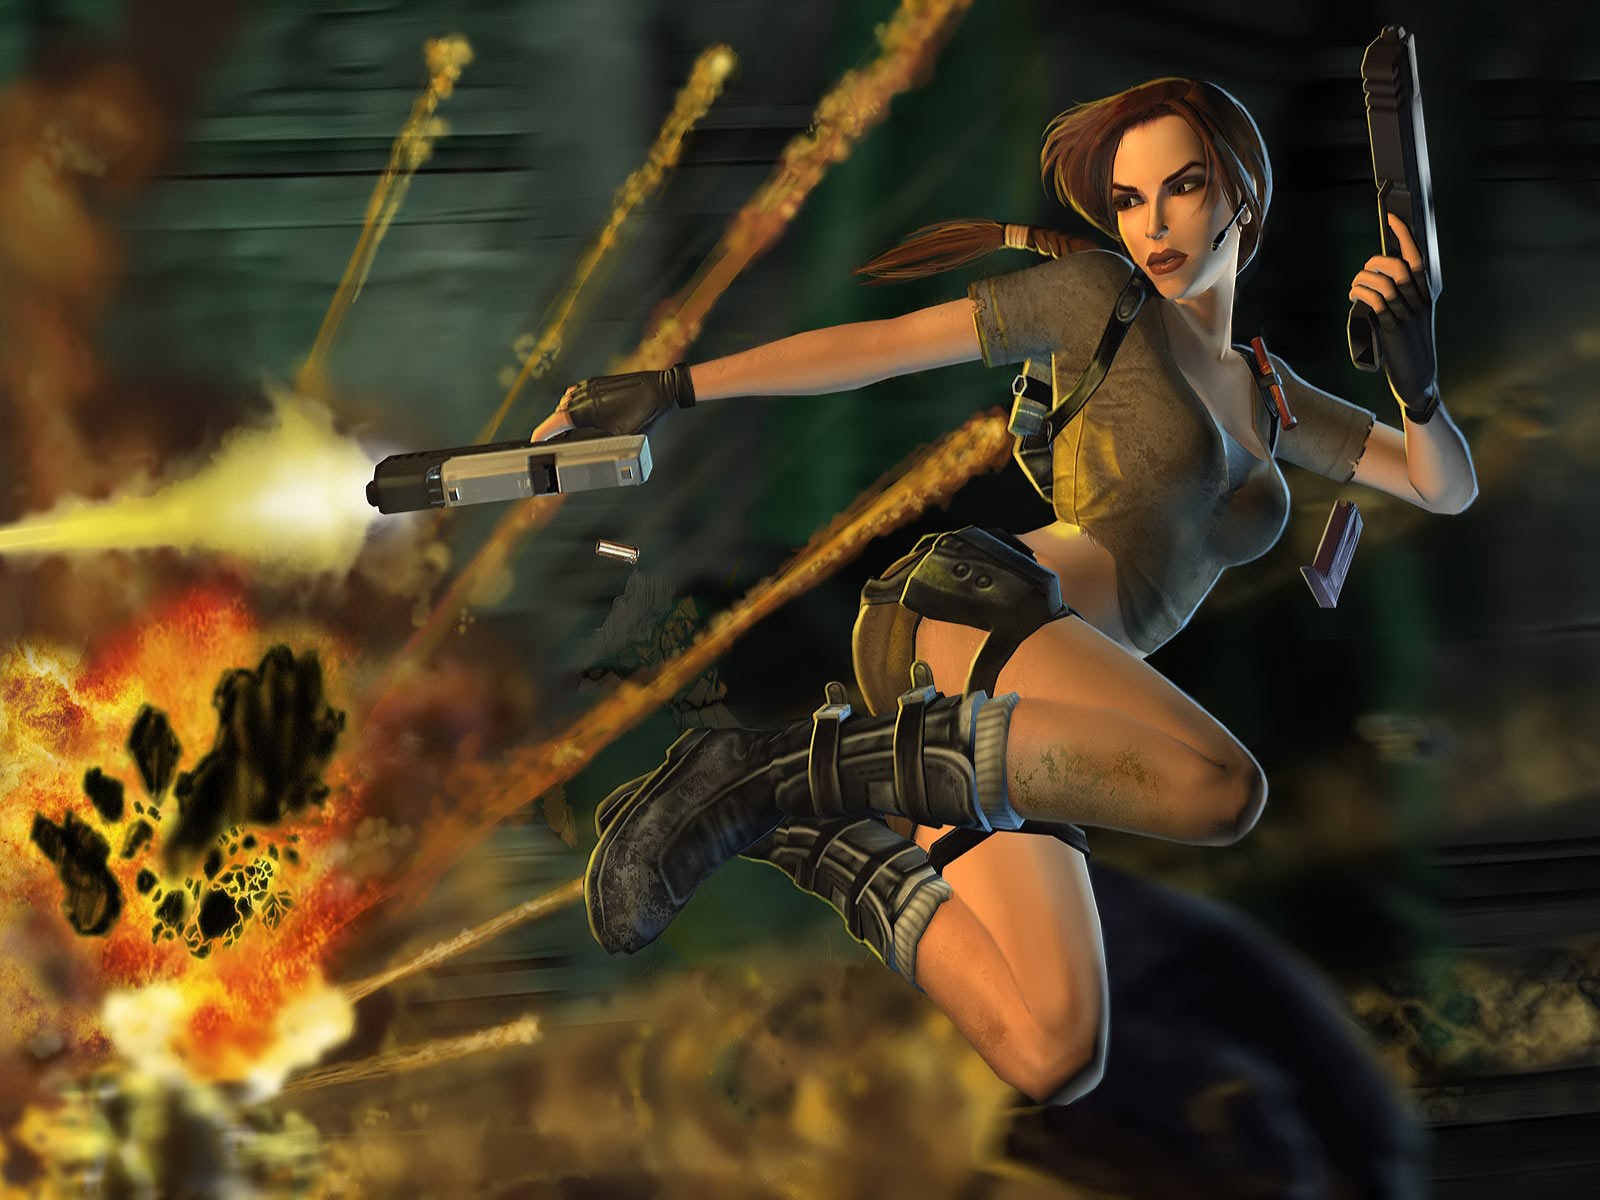 Desktop Wallpaper · Gallery · Games Tomb Raider - Lara Croft